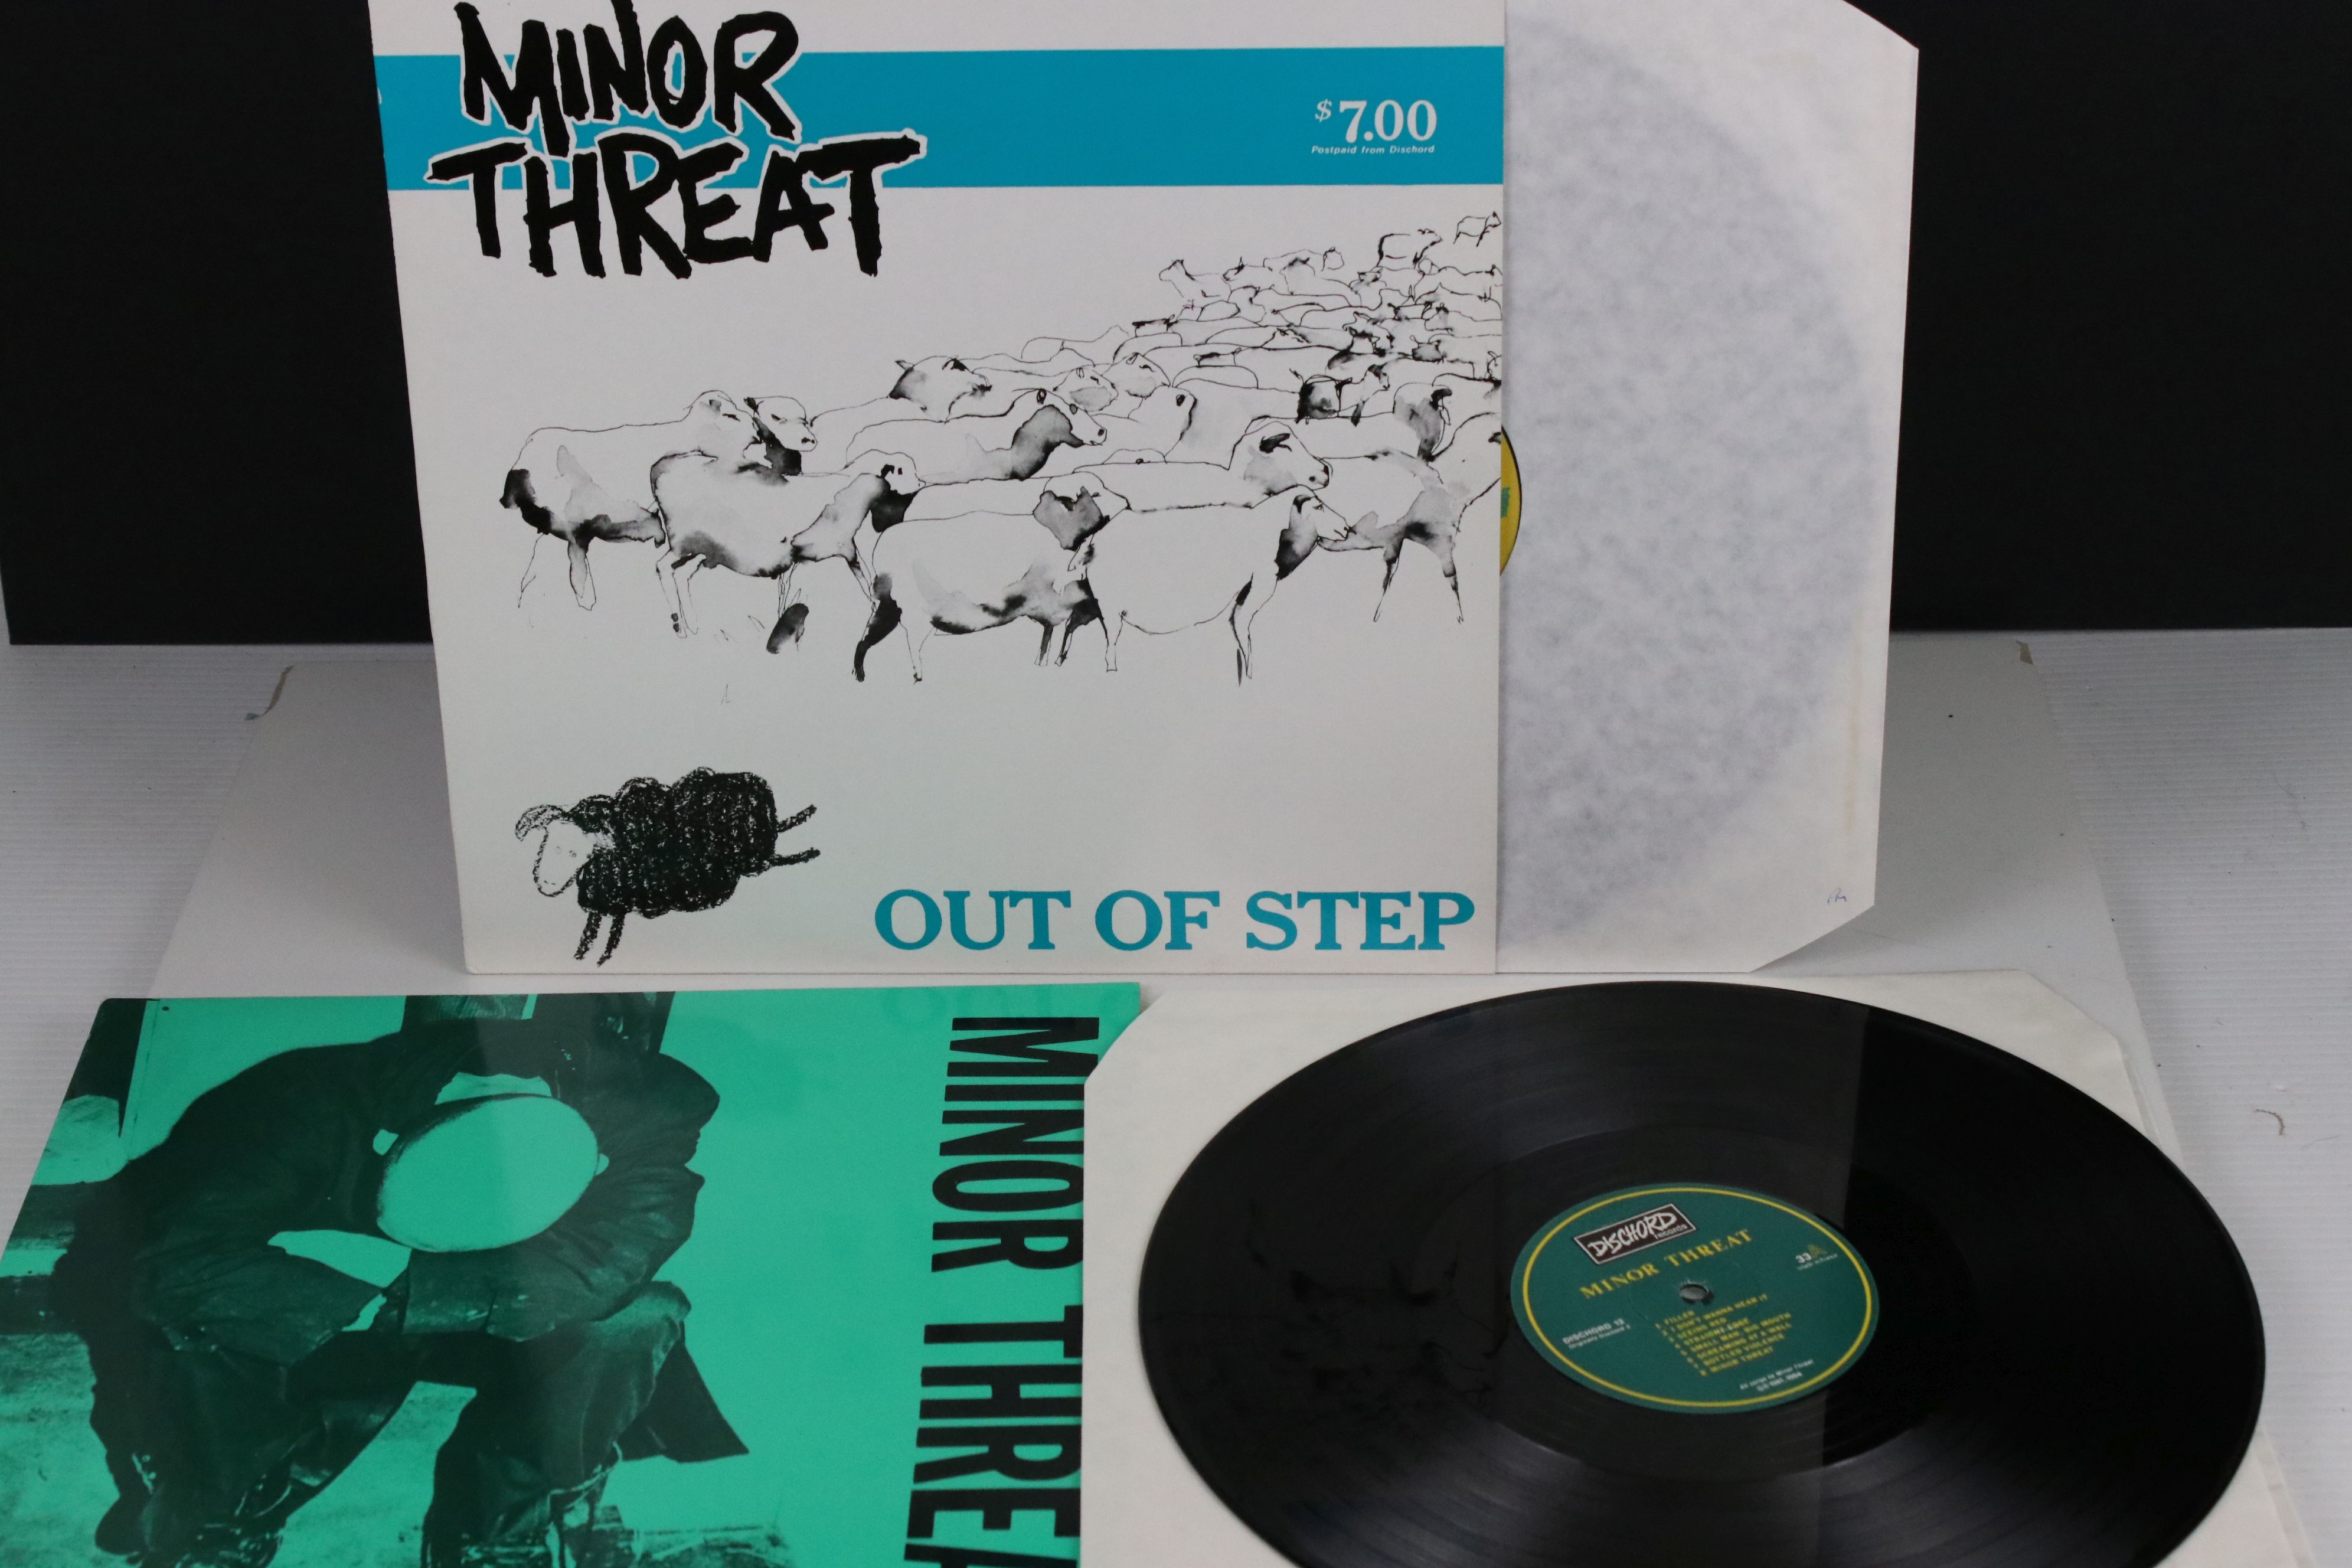 Vinyl - Two Minor Threat LPs to include Out of Step on Dischord No 10 and self titled No 13, both ex